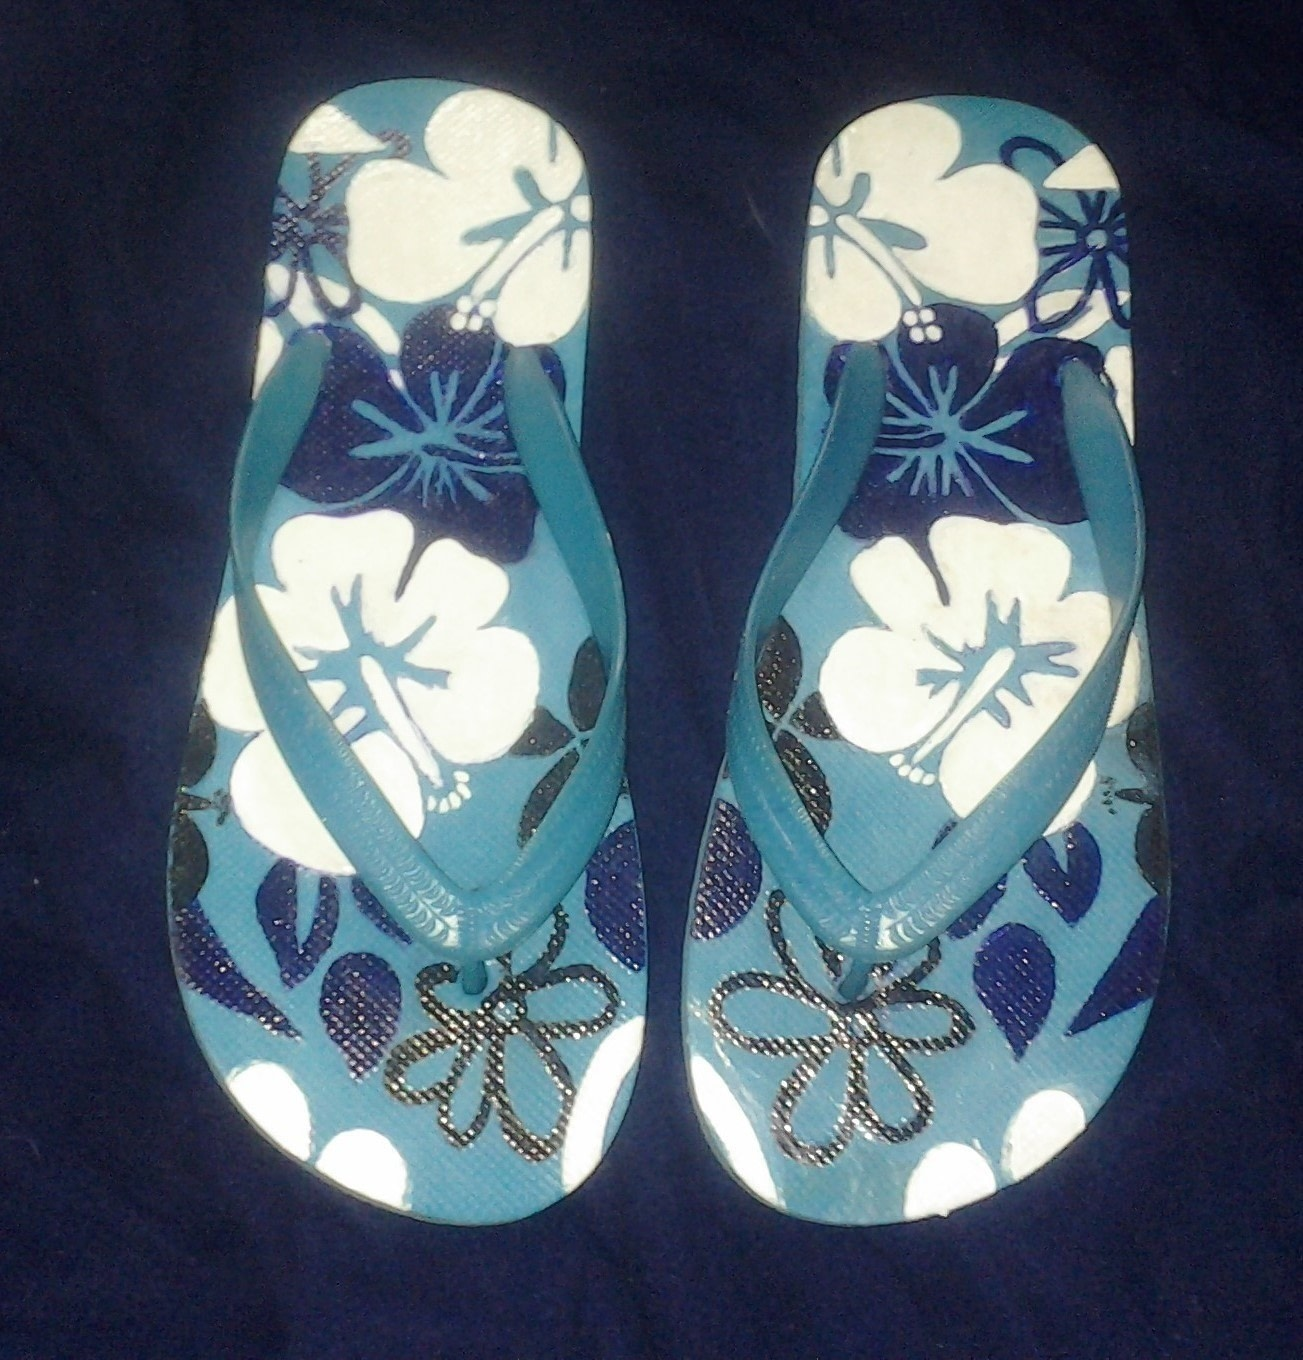 cce8595e8 The process of make the shoes . Make a sandal   flip flop using pencil